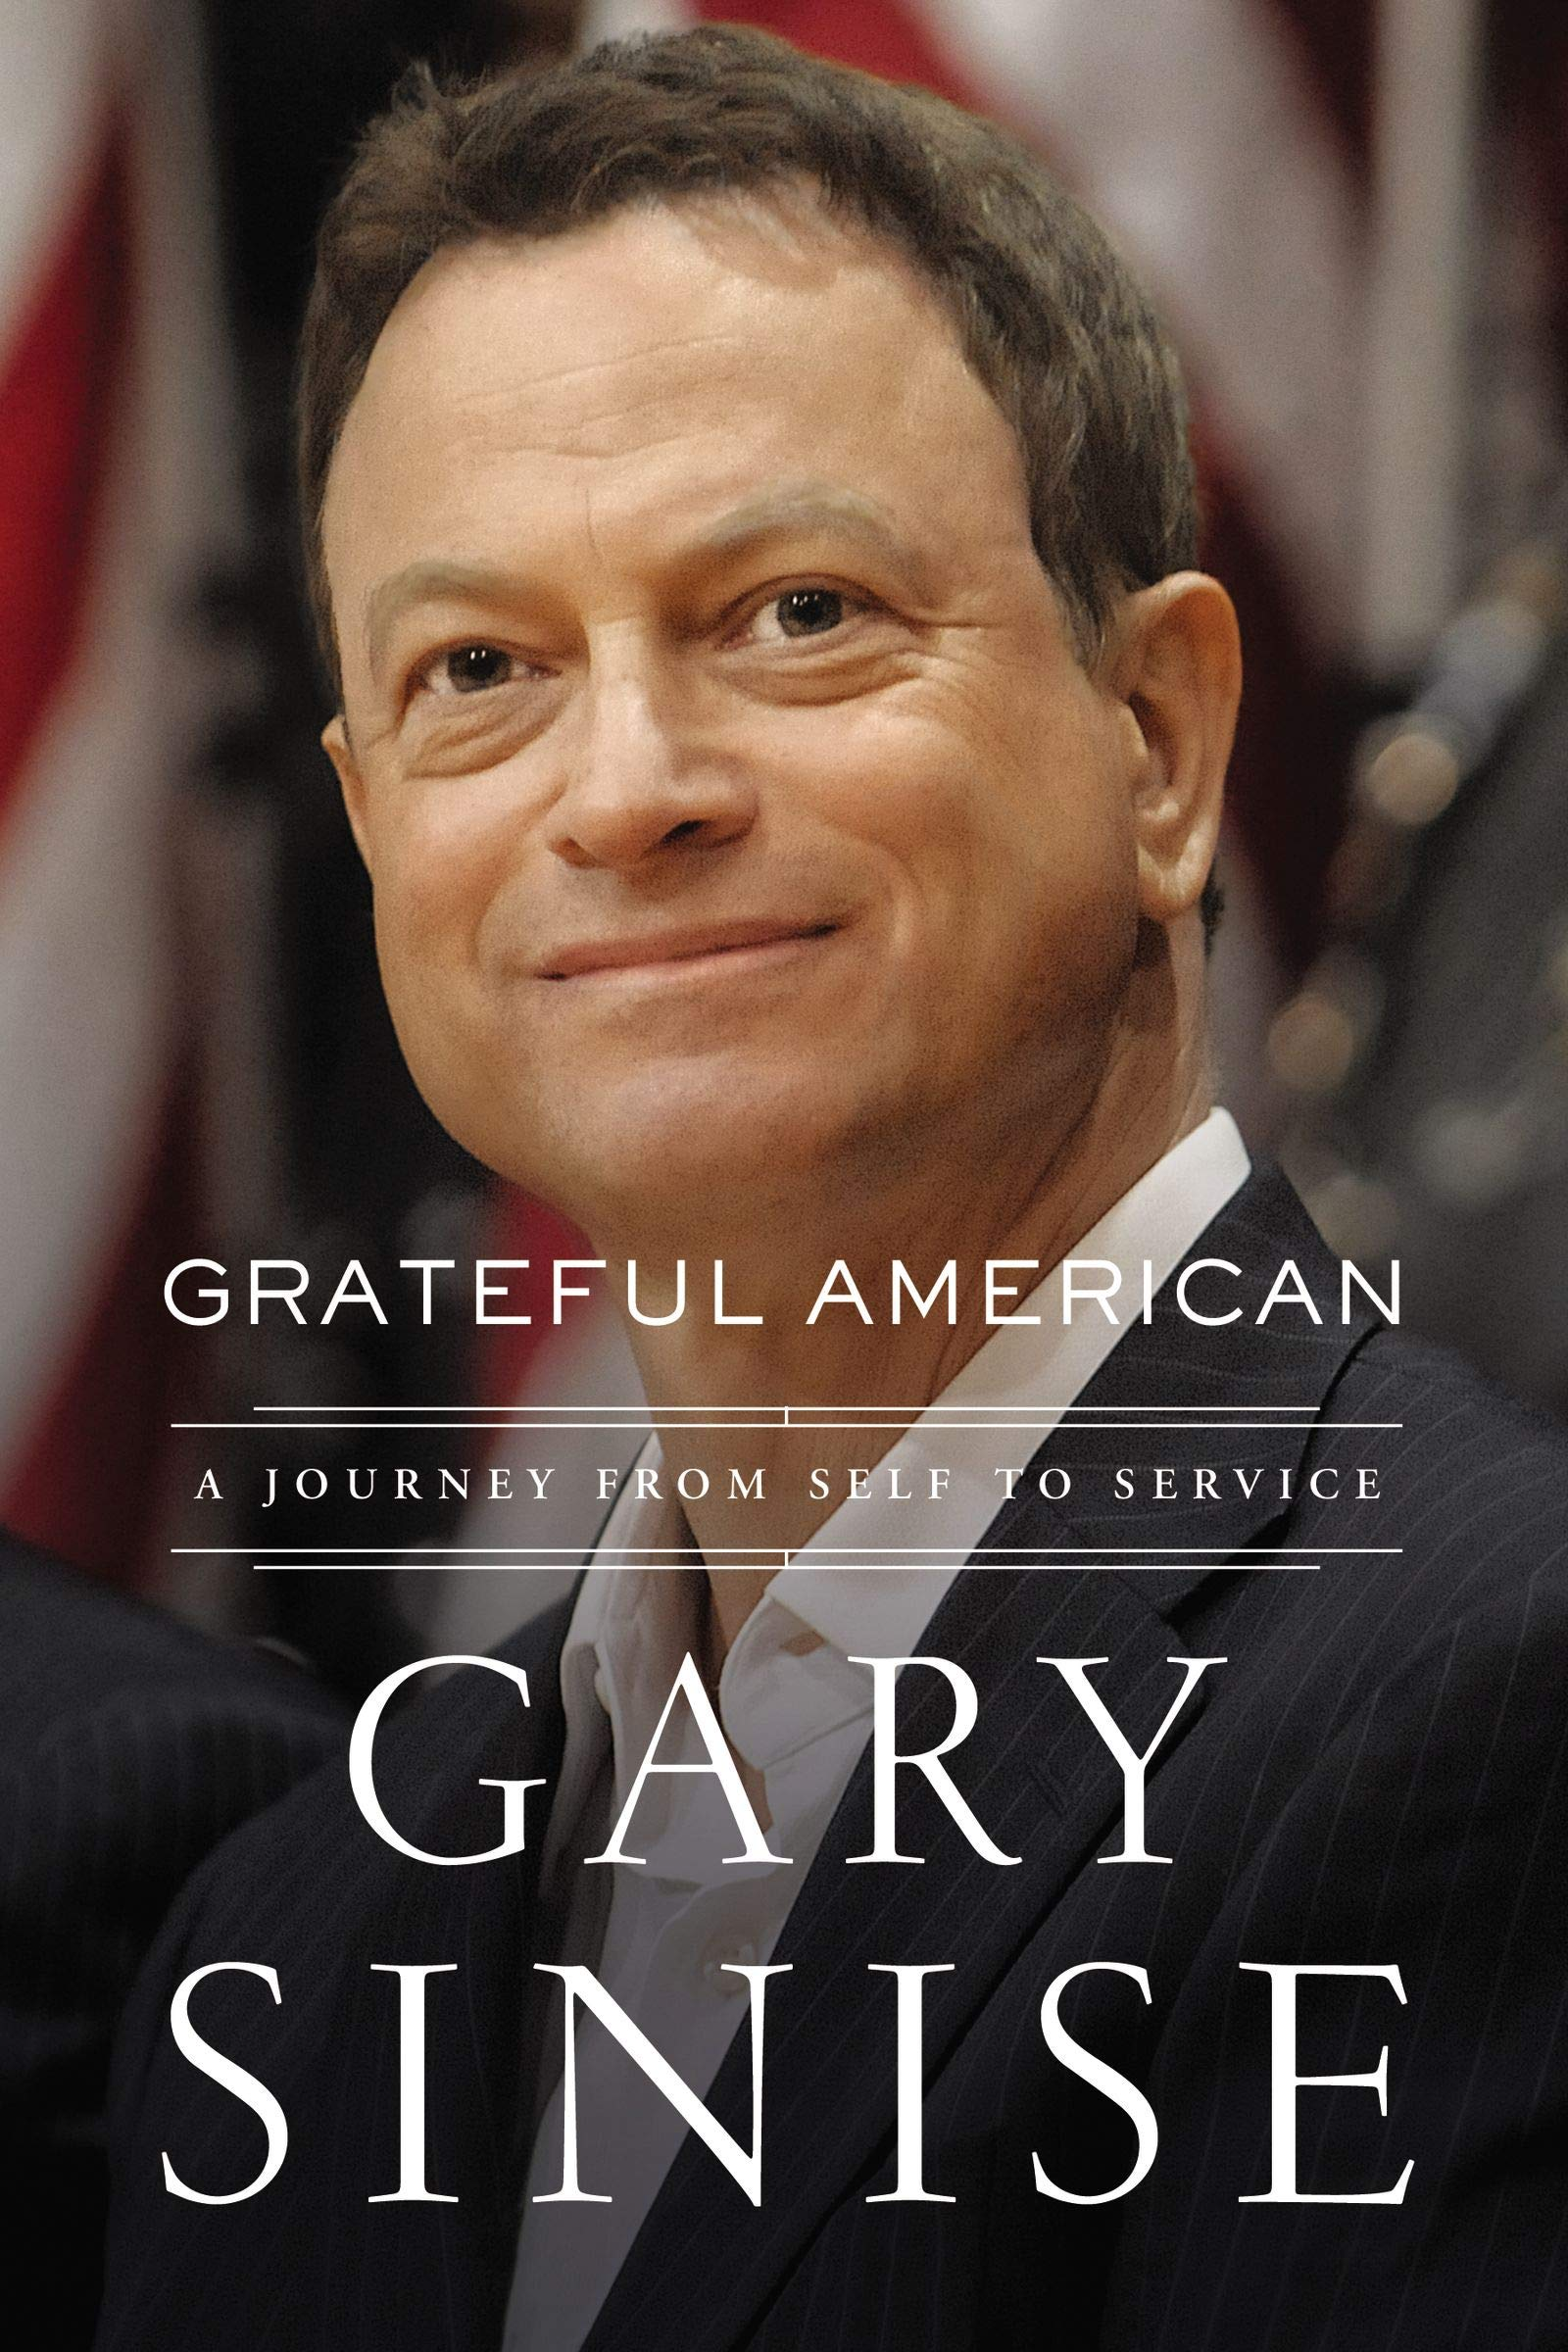 Buy Grateful American Now!